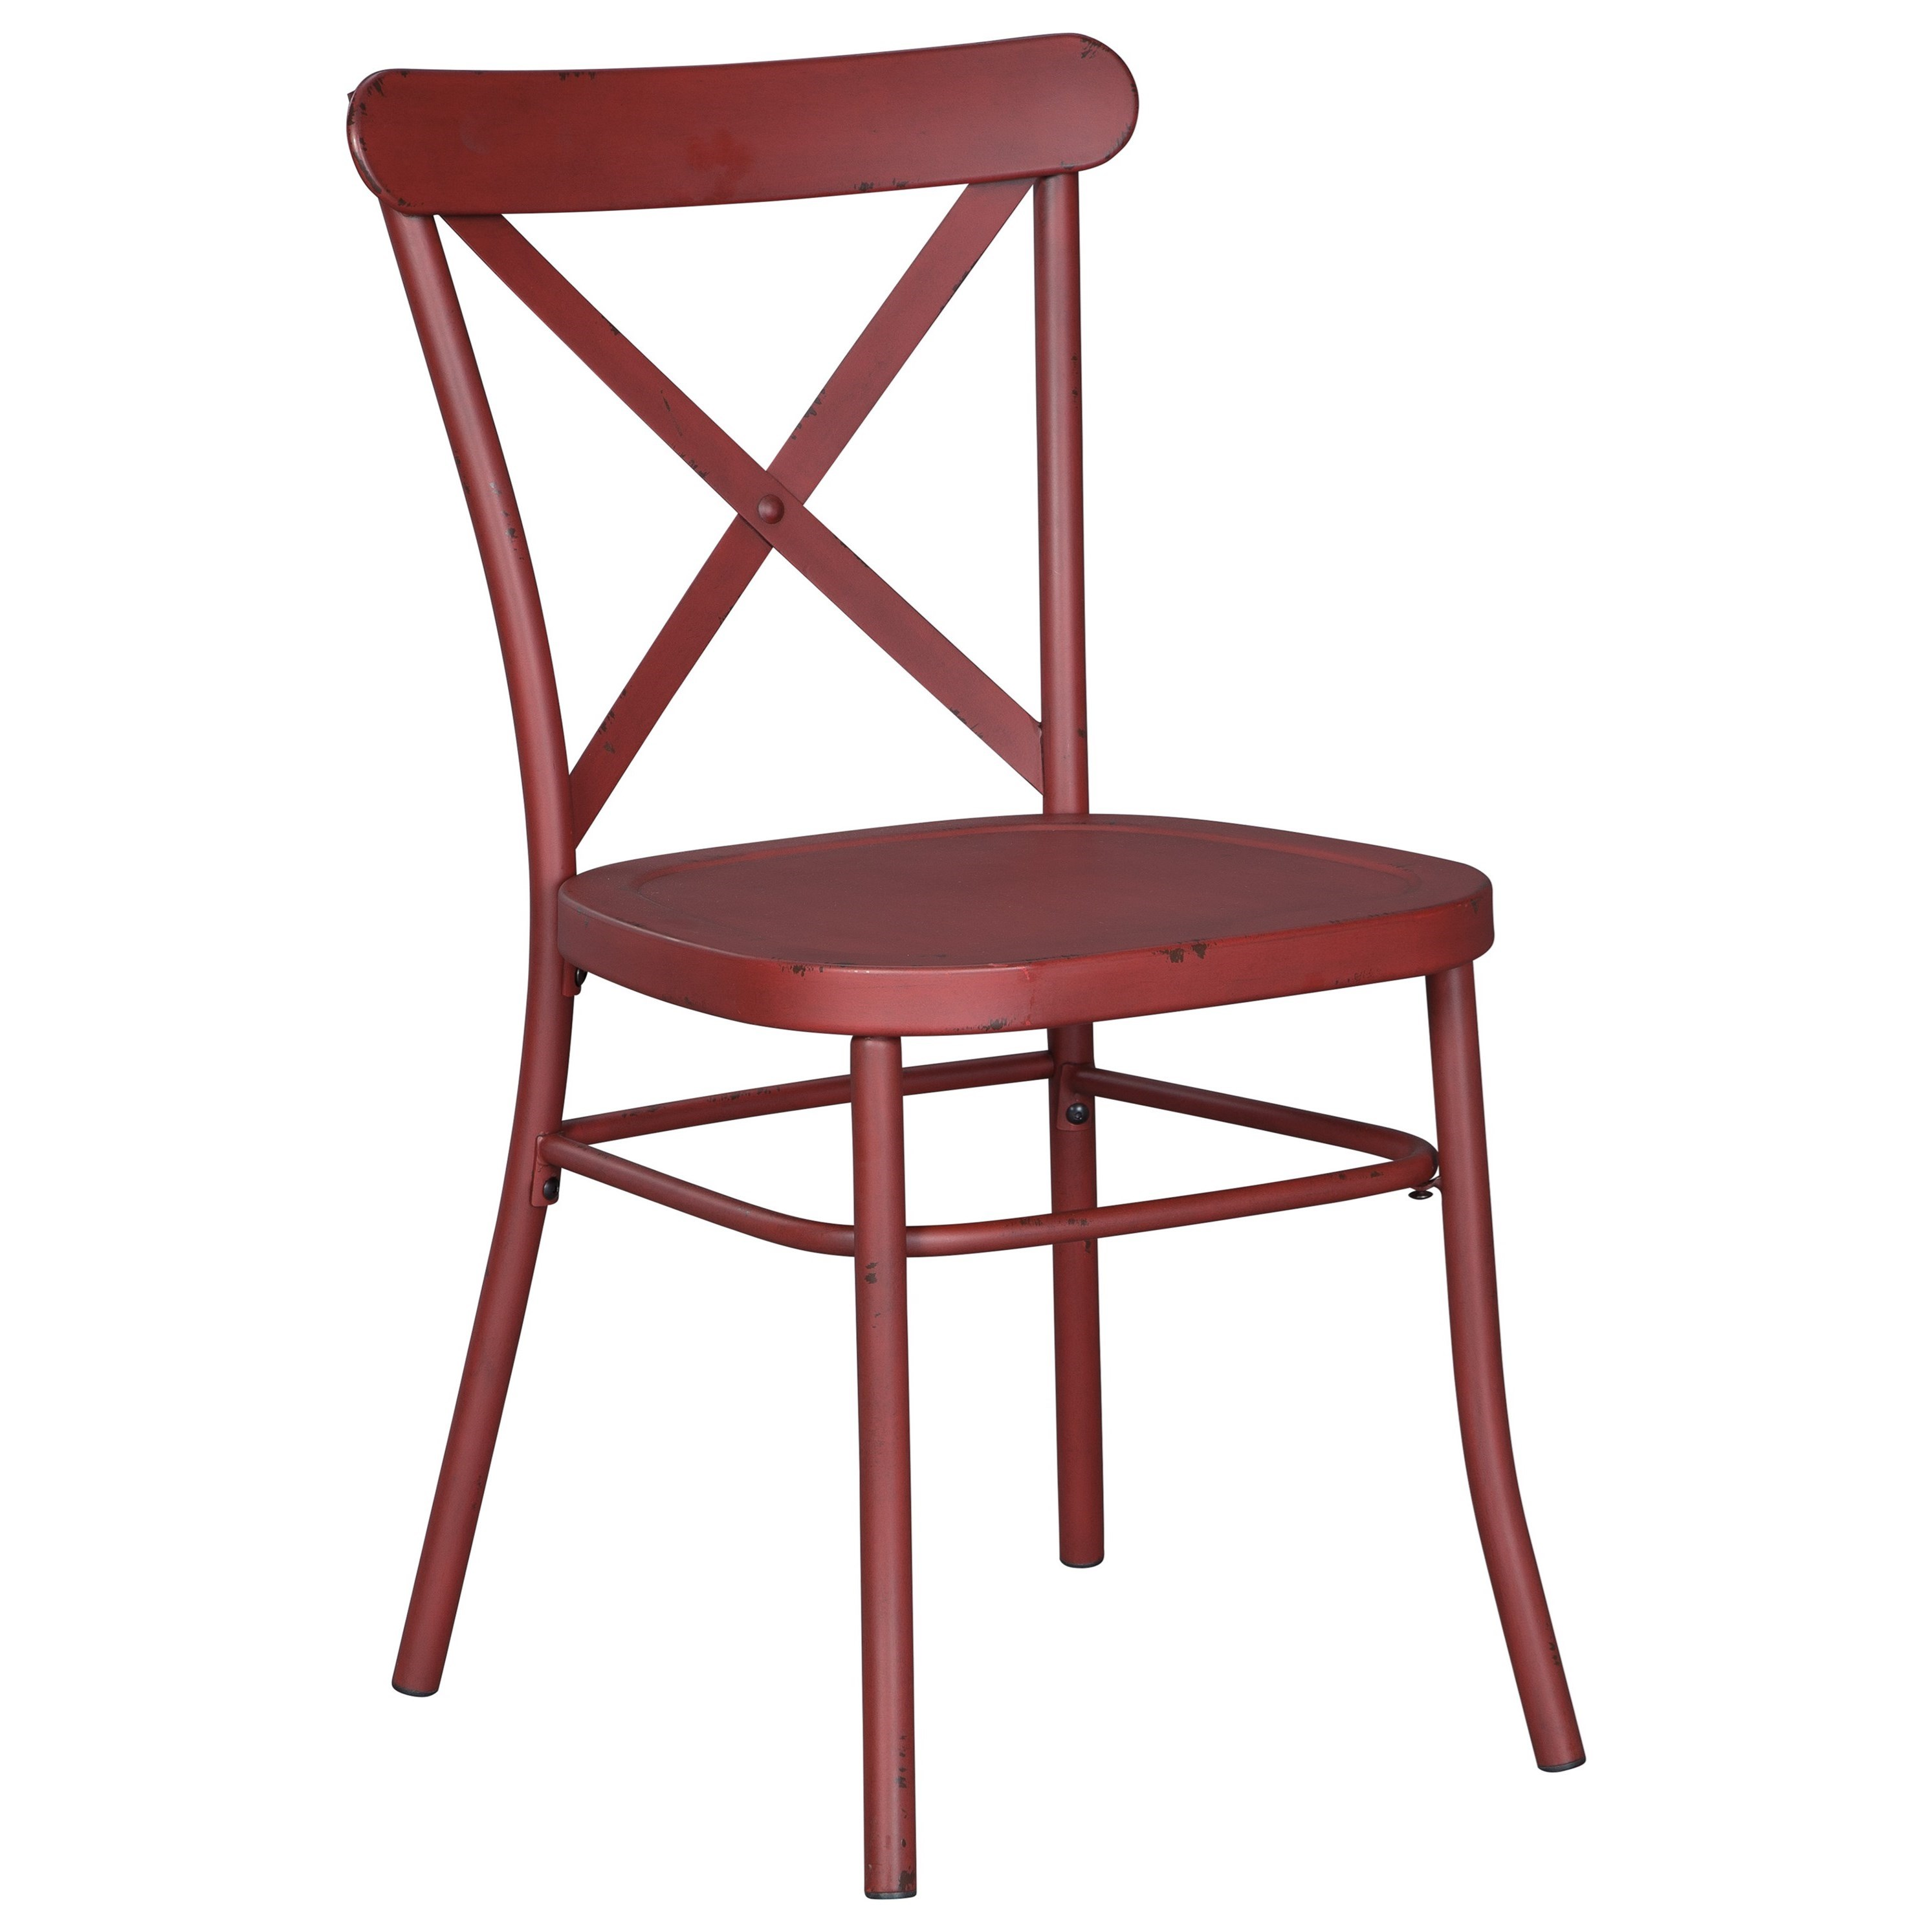 Signature design by ashley minnona red dining room side for Red dining room chairs